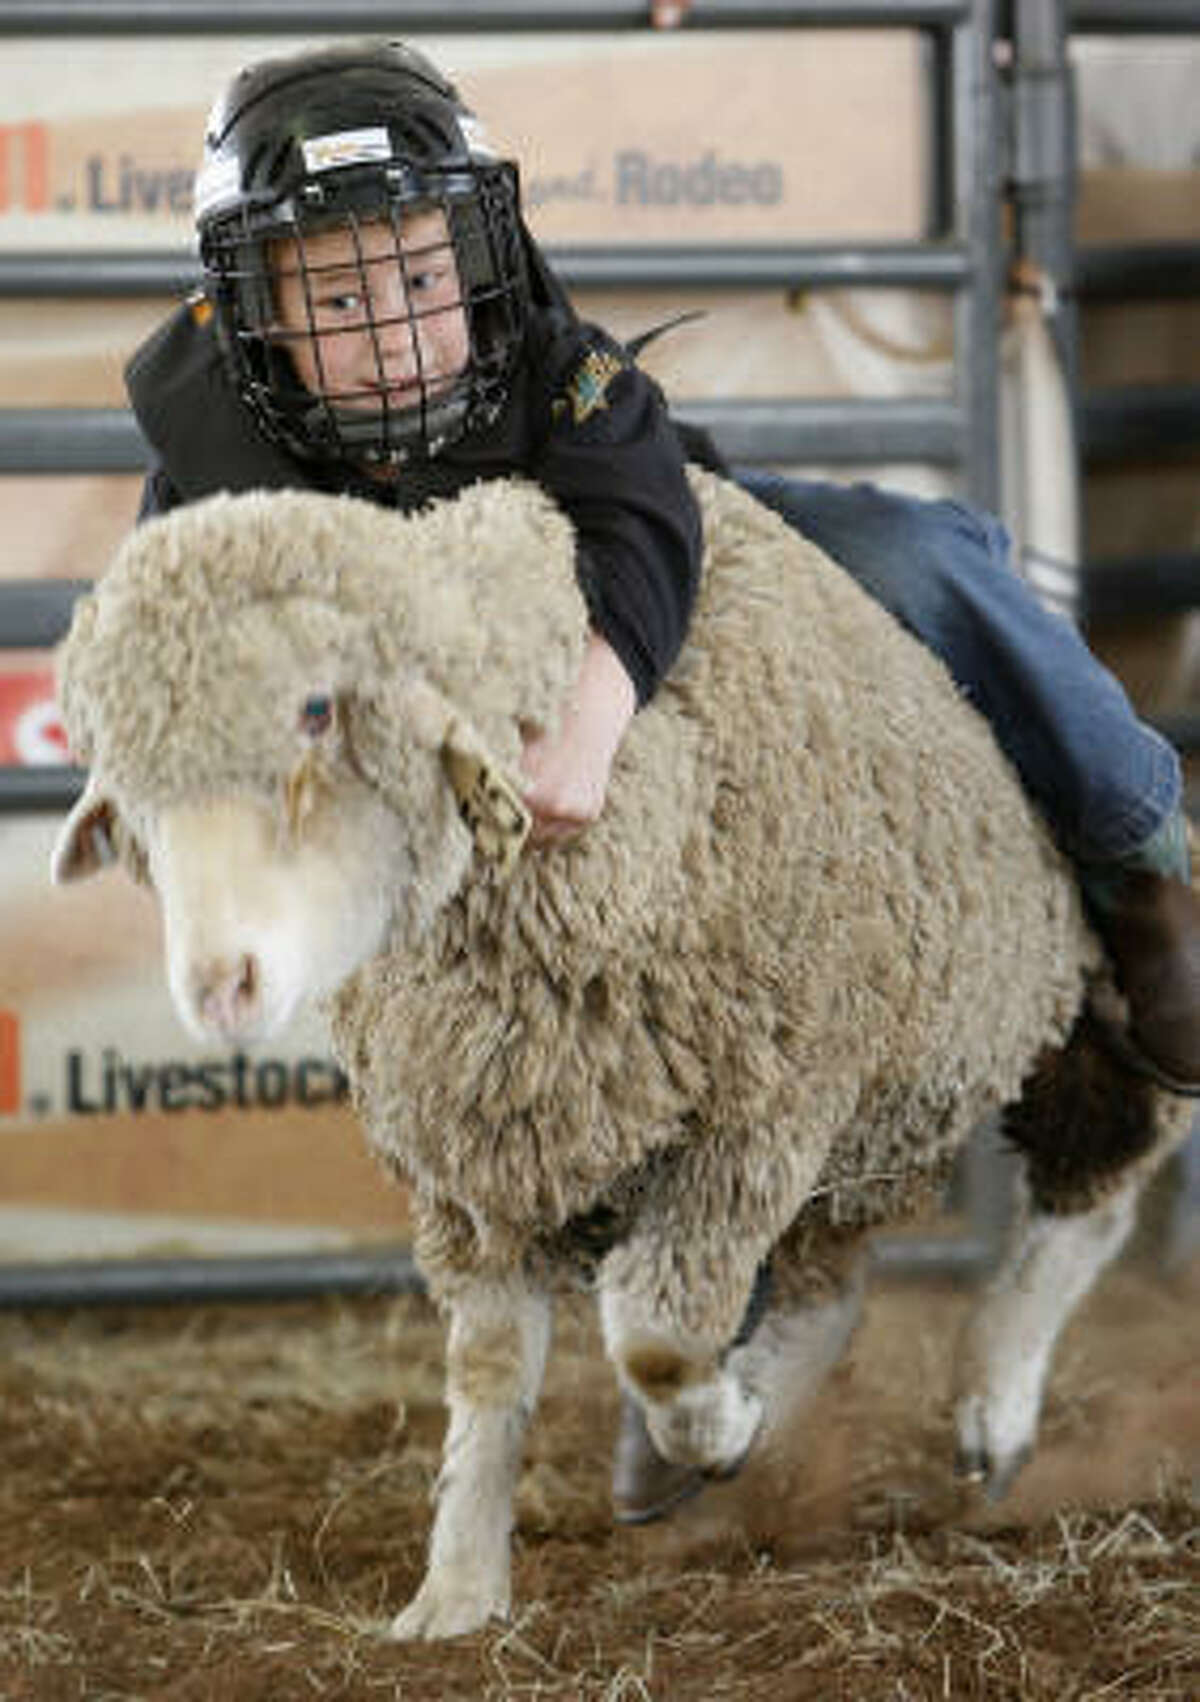 William Honeycutt, of Frisco, Texas, hangs onto his sheep during the Mutton Bustin' in Kids Country at the Houston Livestock Show and Rodeo.